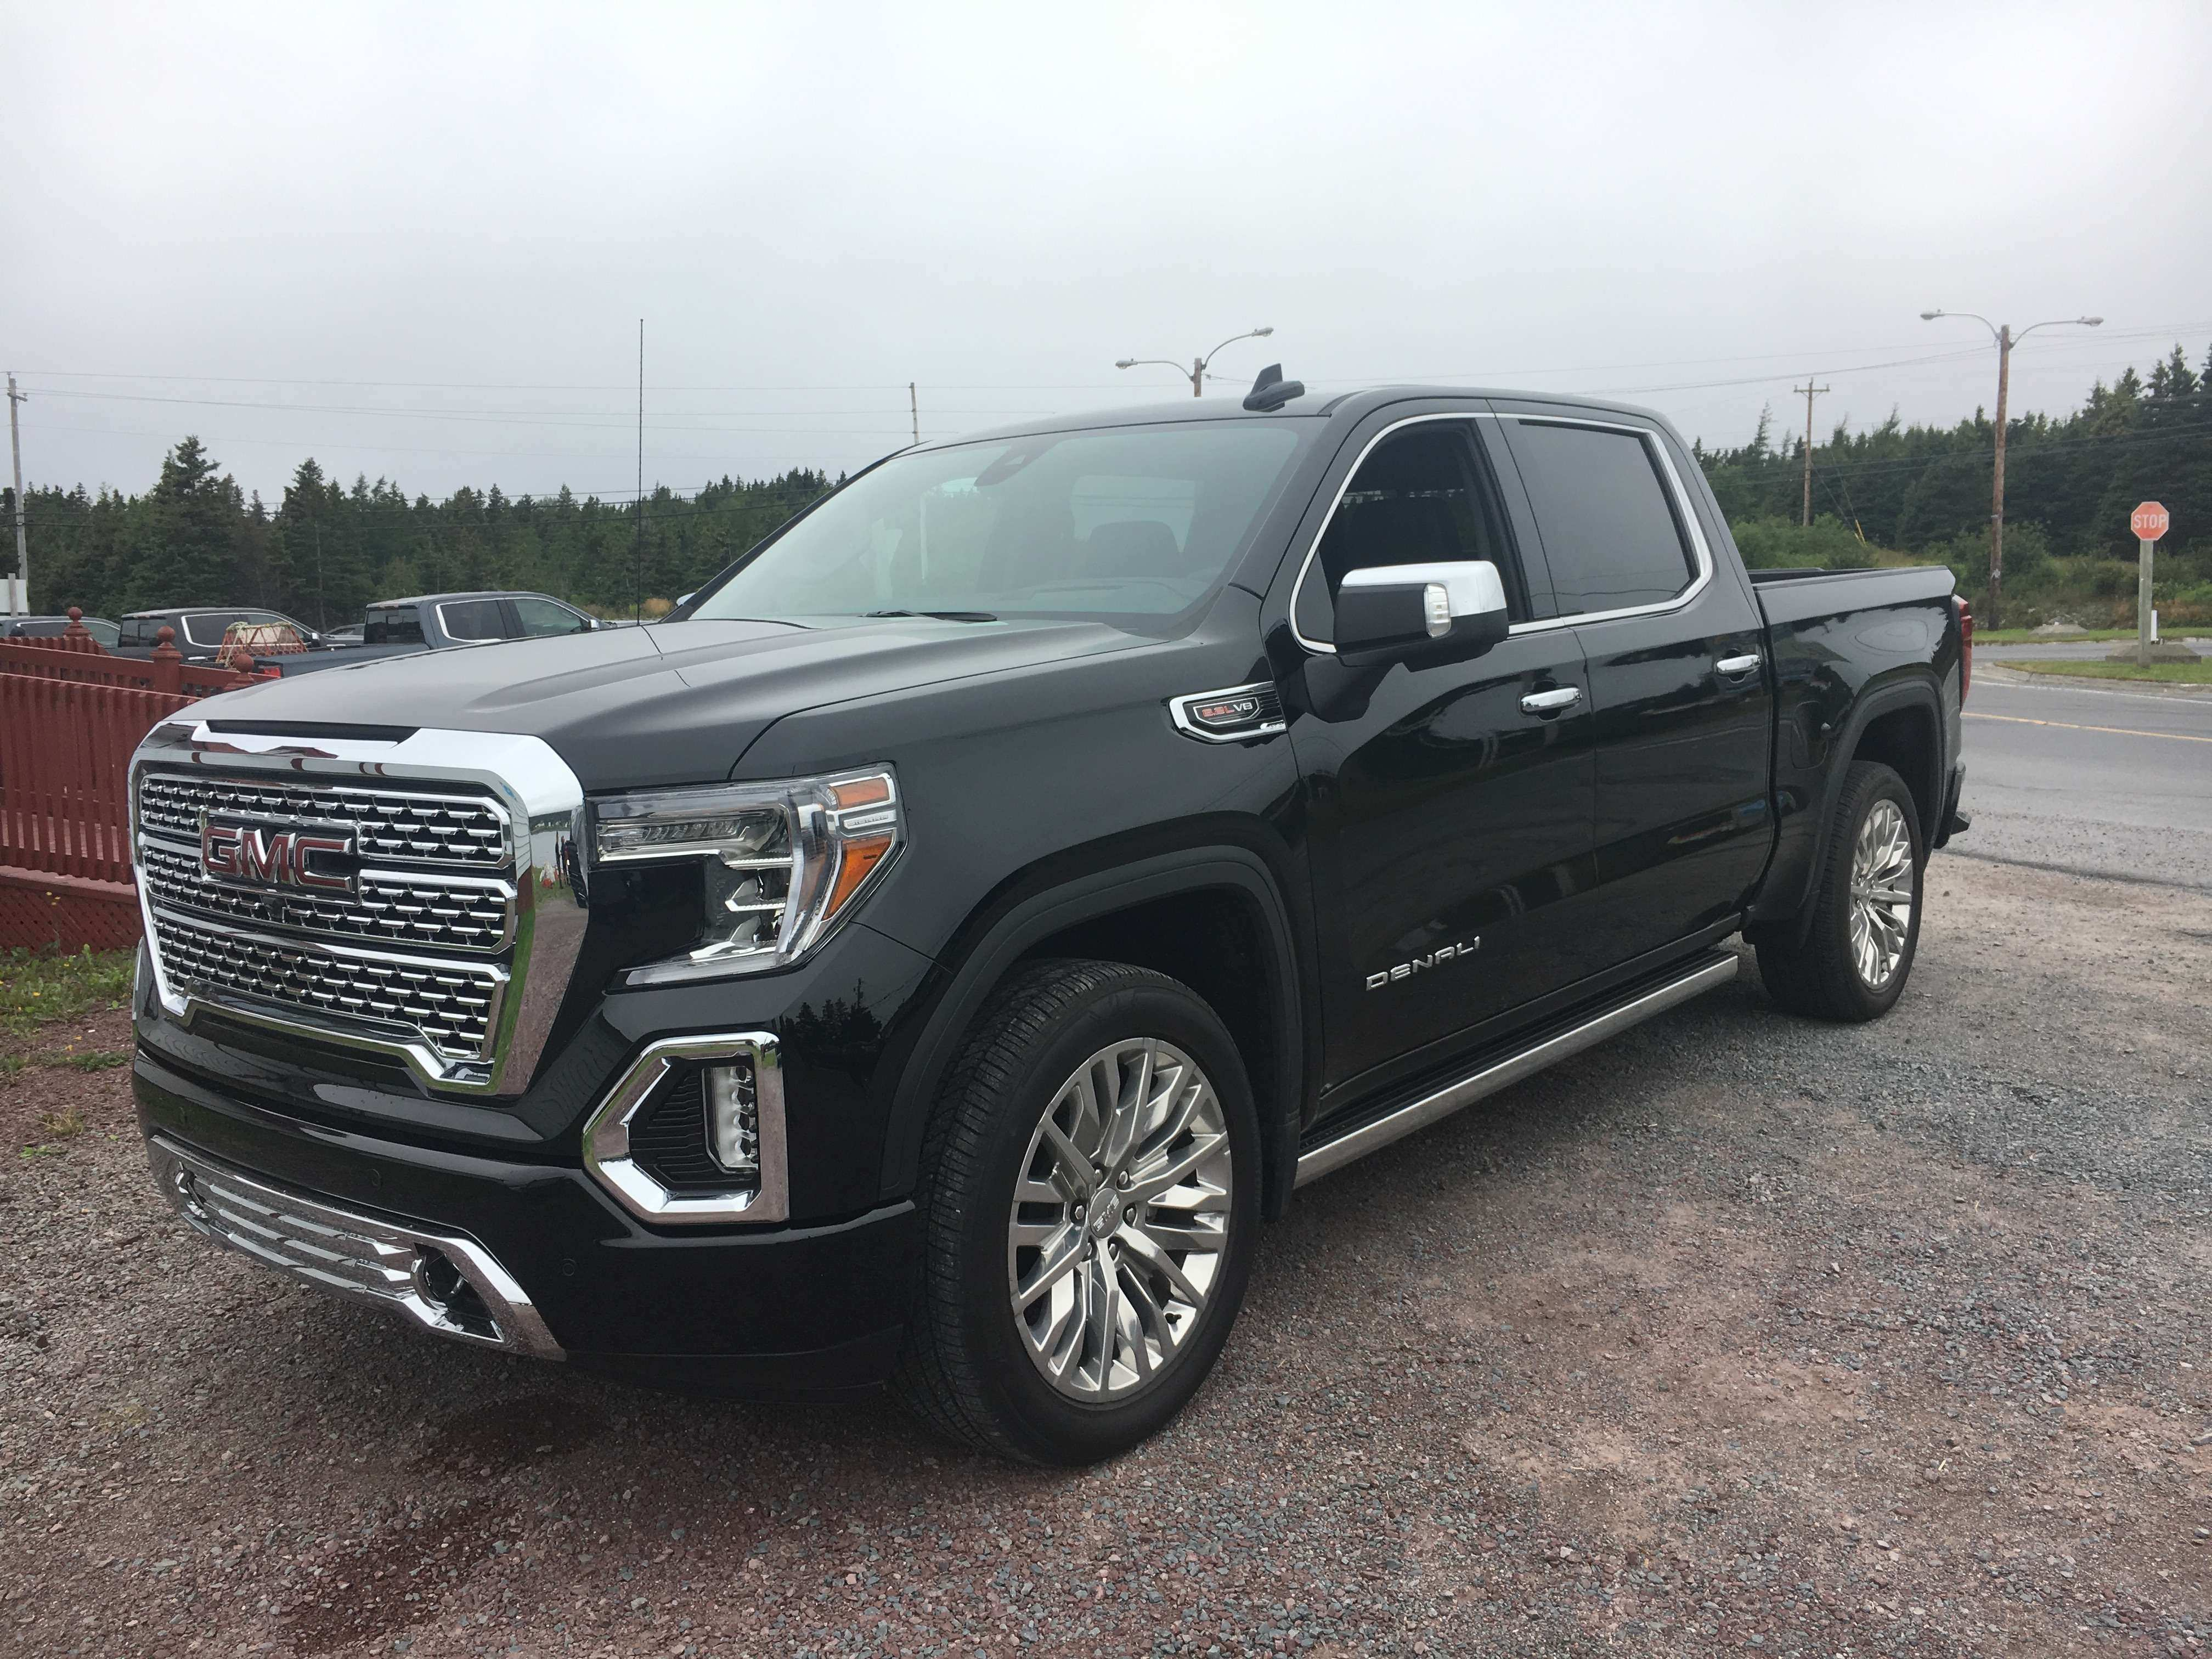 59 Best Review Best 2019 Gmc Denali Pickup Exterior And Interior Review Redesign and Concept by Best 2019 Gmc Denali Pickup Exterior And Interior Review